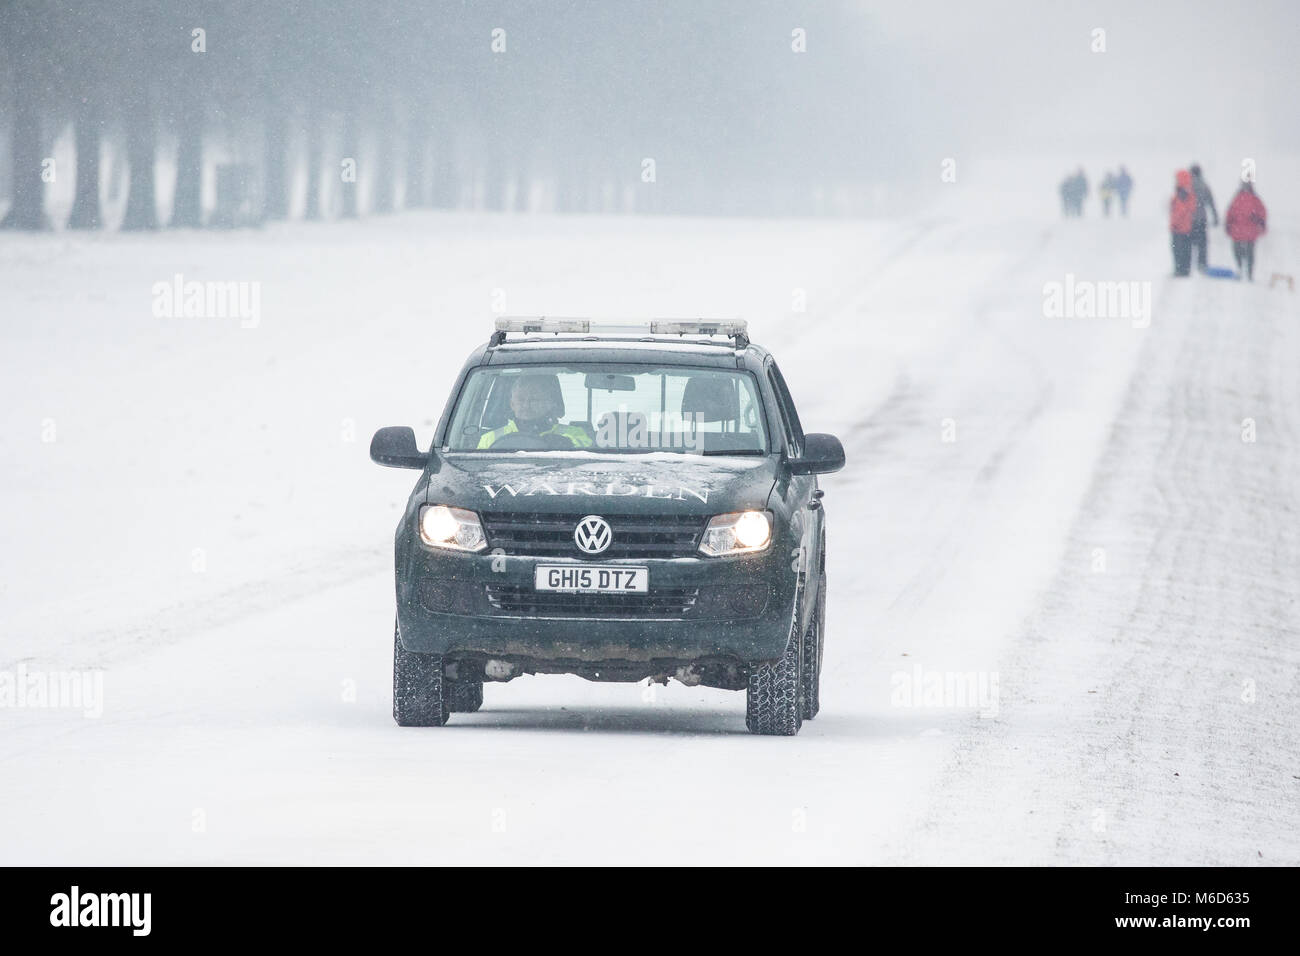 Windsor, UK. 2nd Mar, 2018. A warden drives along a snow-covered Long Walk in Windsor Great Park. Credit: Mark Kerrison/Alamy Stock Photo